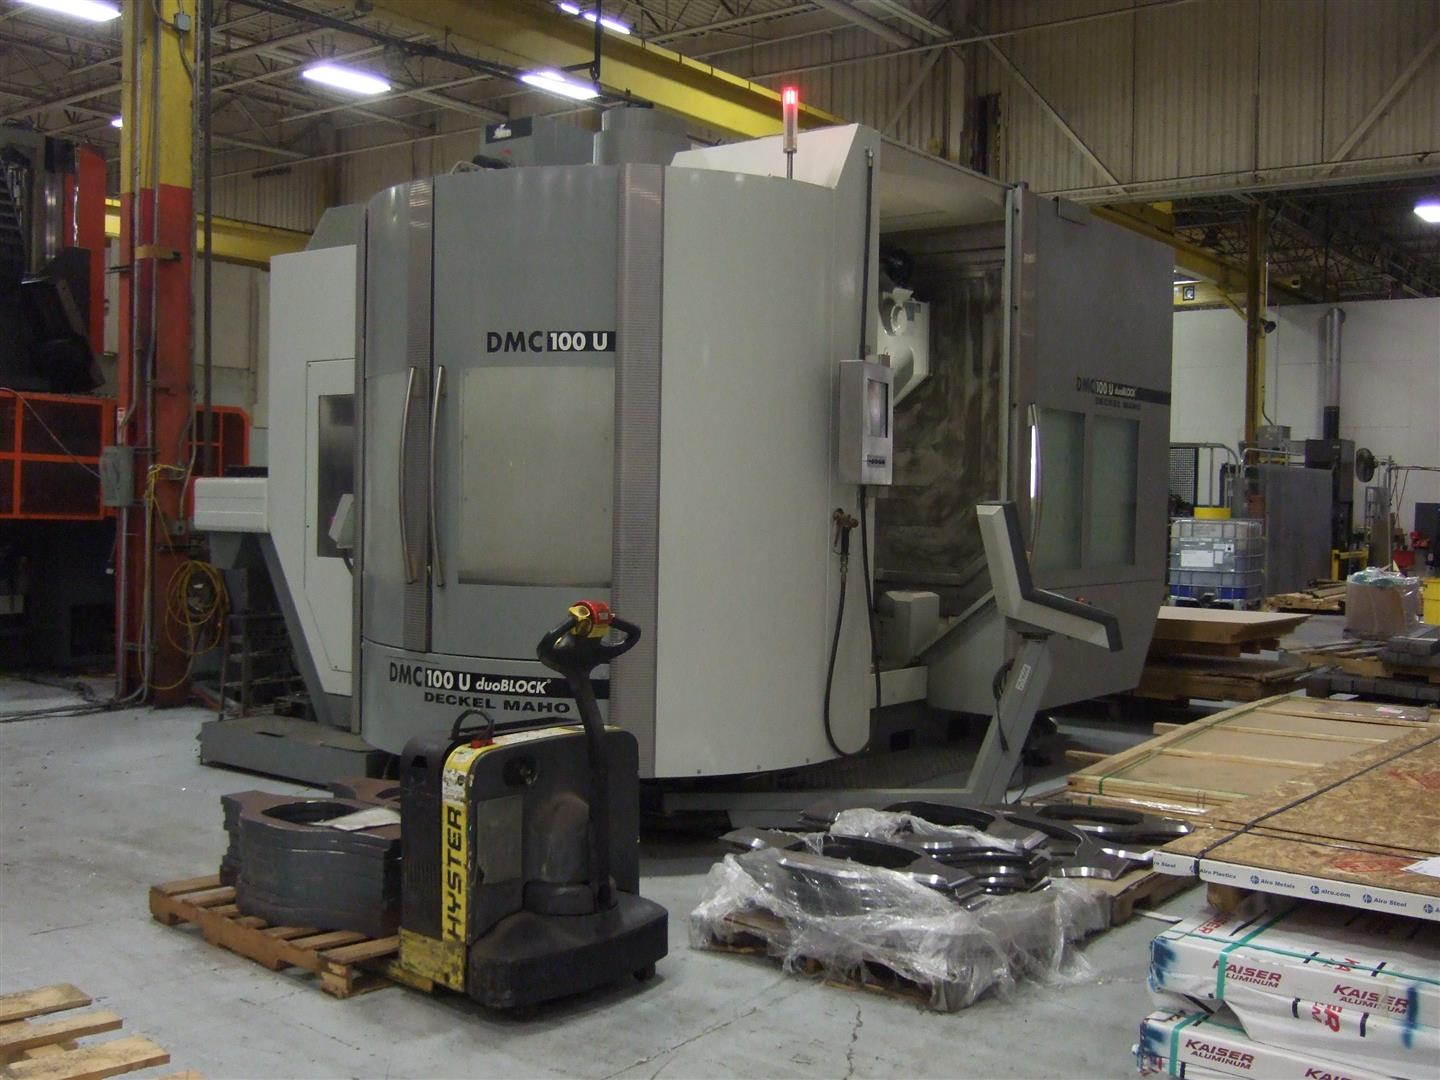 Machine 6741, Deckel-Maho DMC 100 U DuoBlock, 2005, Heidenhain Mill Plus IT V600, 1100 x 910 mm pallet, 10K RPM, 120 ATC